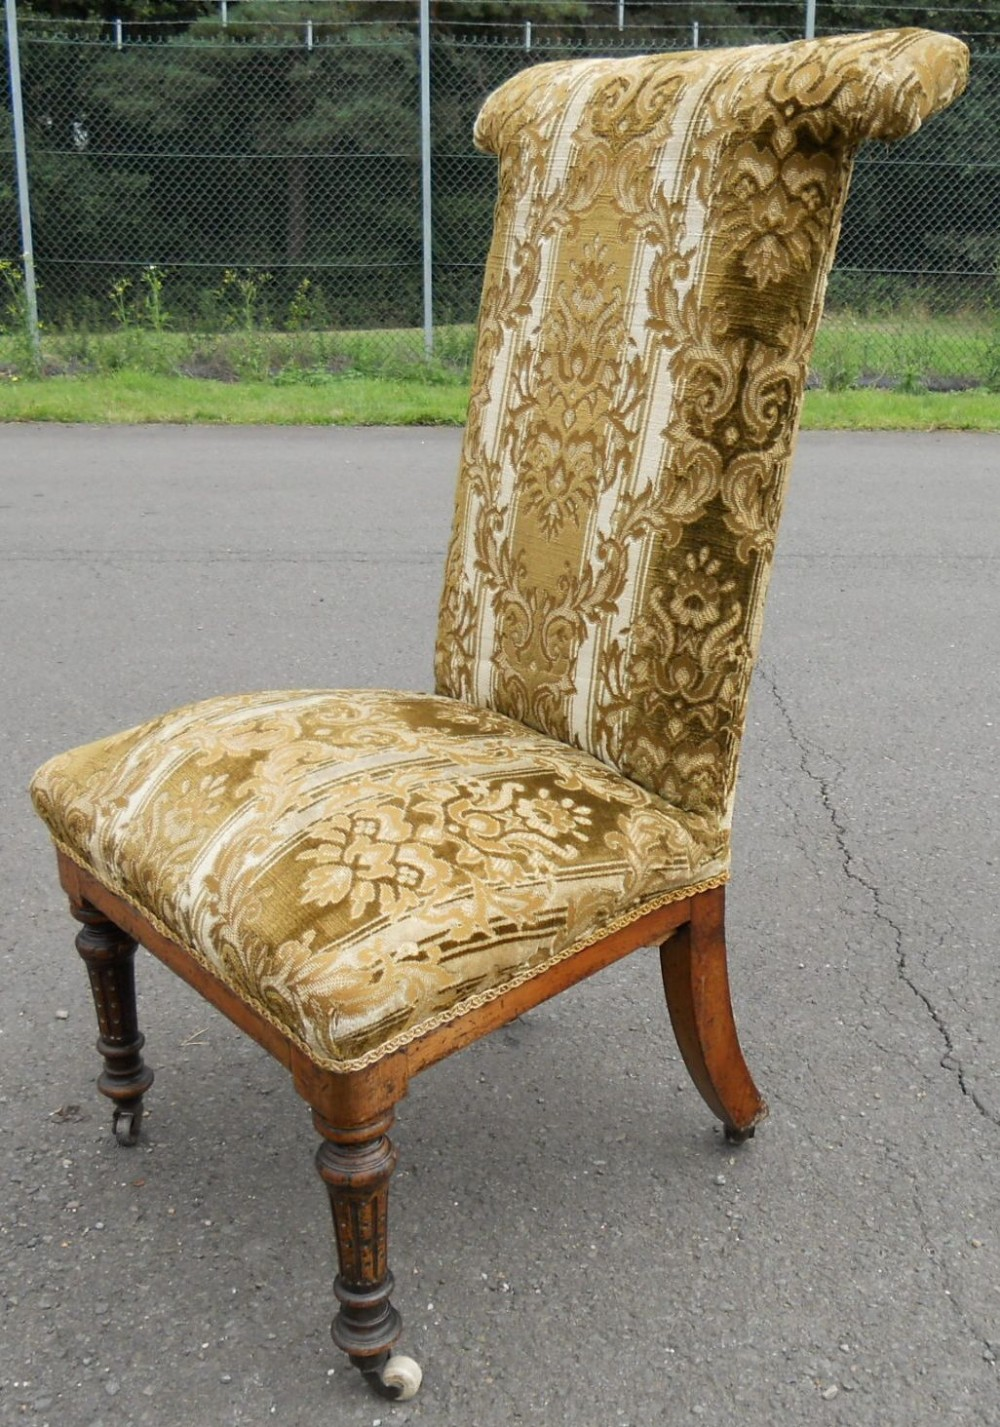 victorian upholstered prayer chair. antique photo - Victorian Upholstered Prayer Chair 239071 Sellingantiques.co.uk